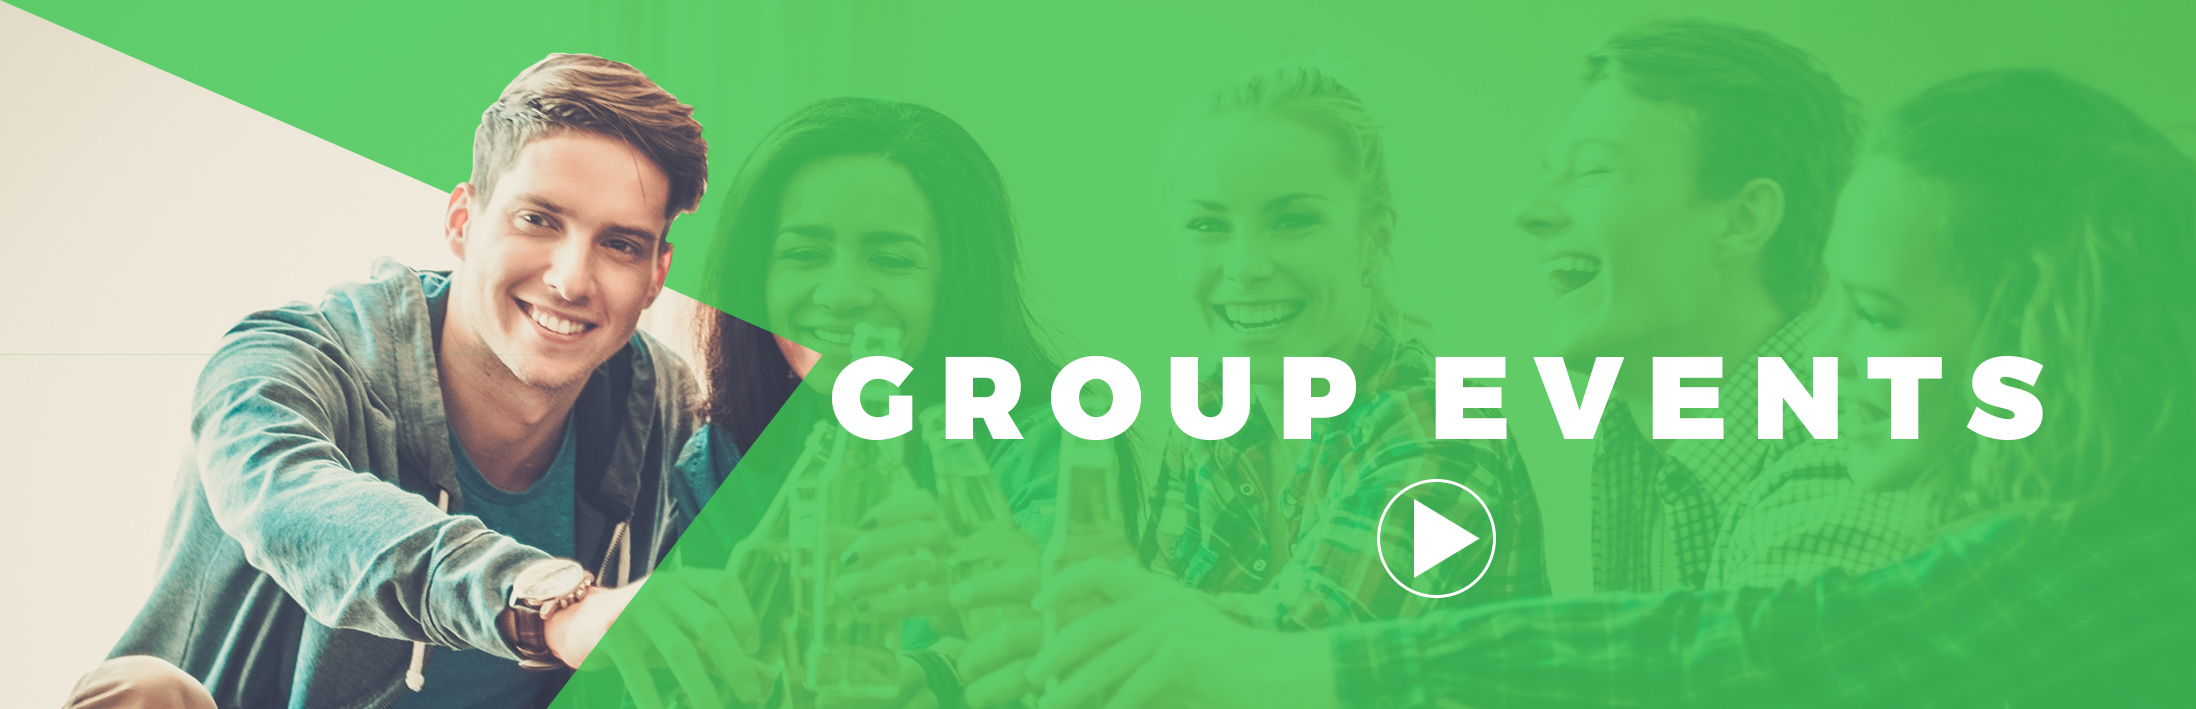 3 - Group Events